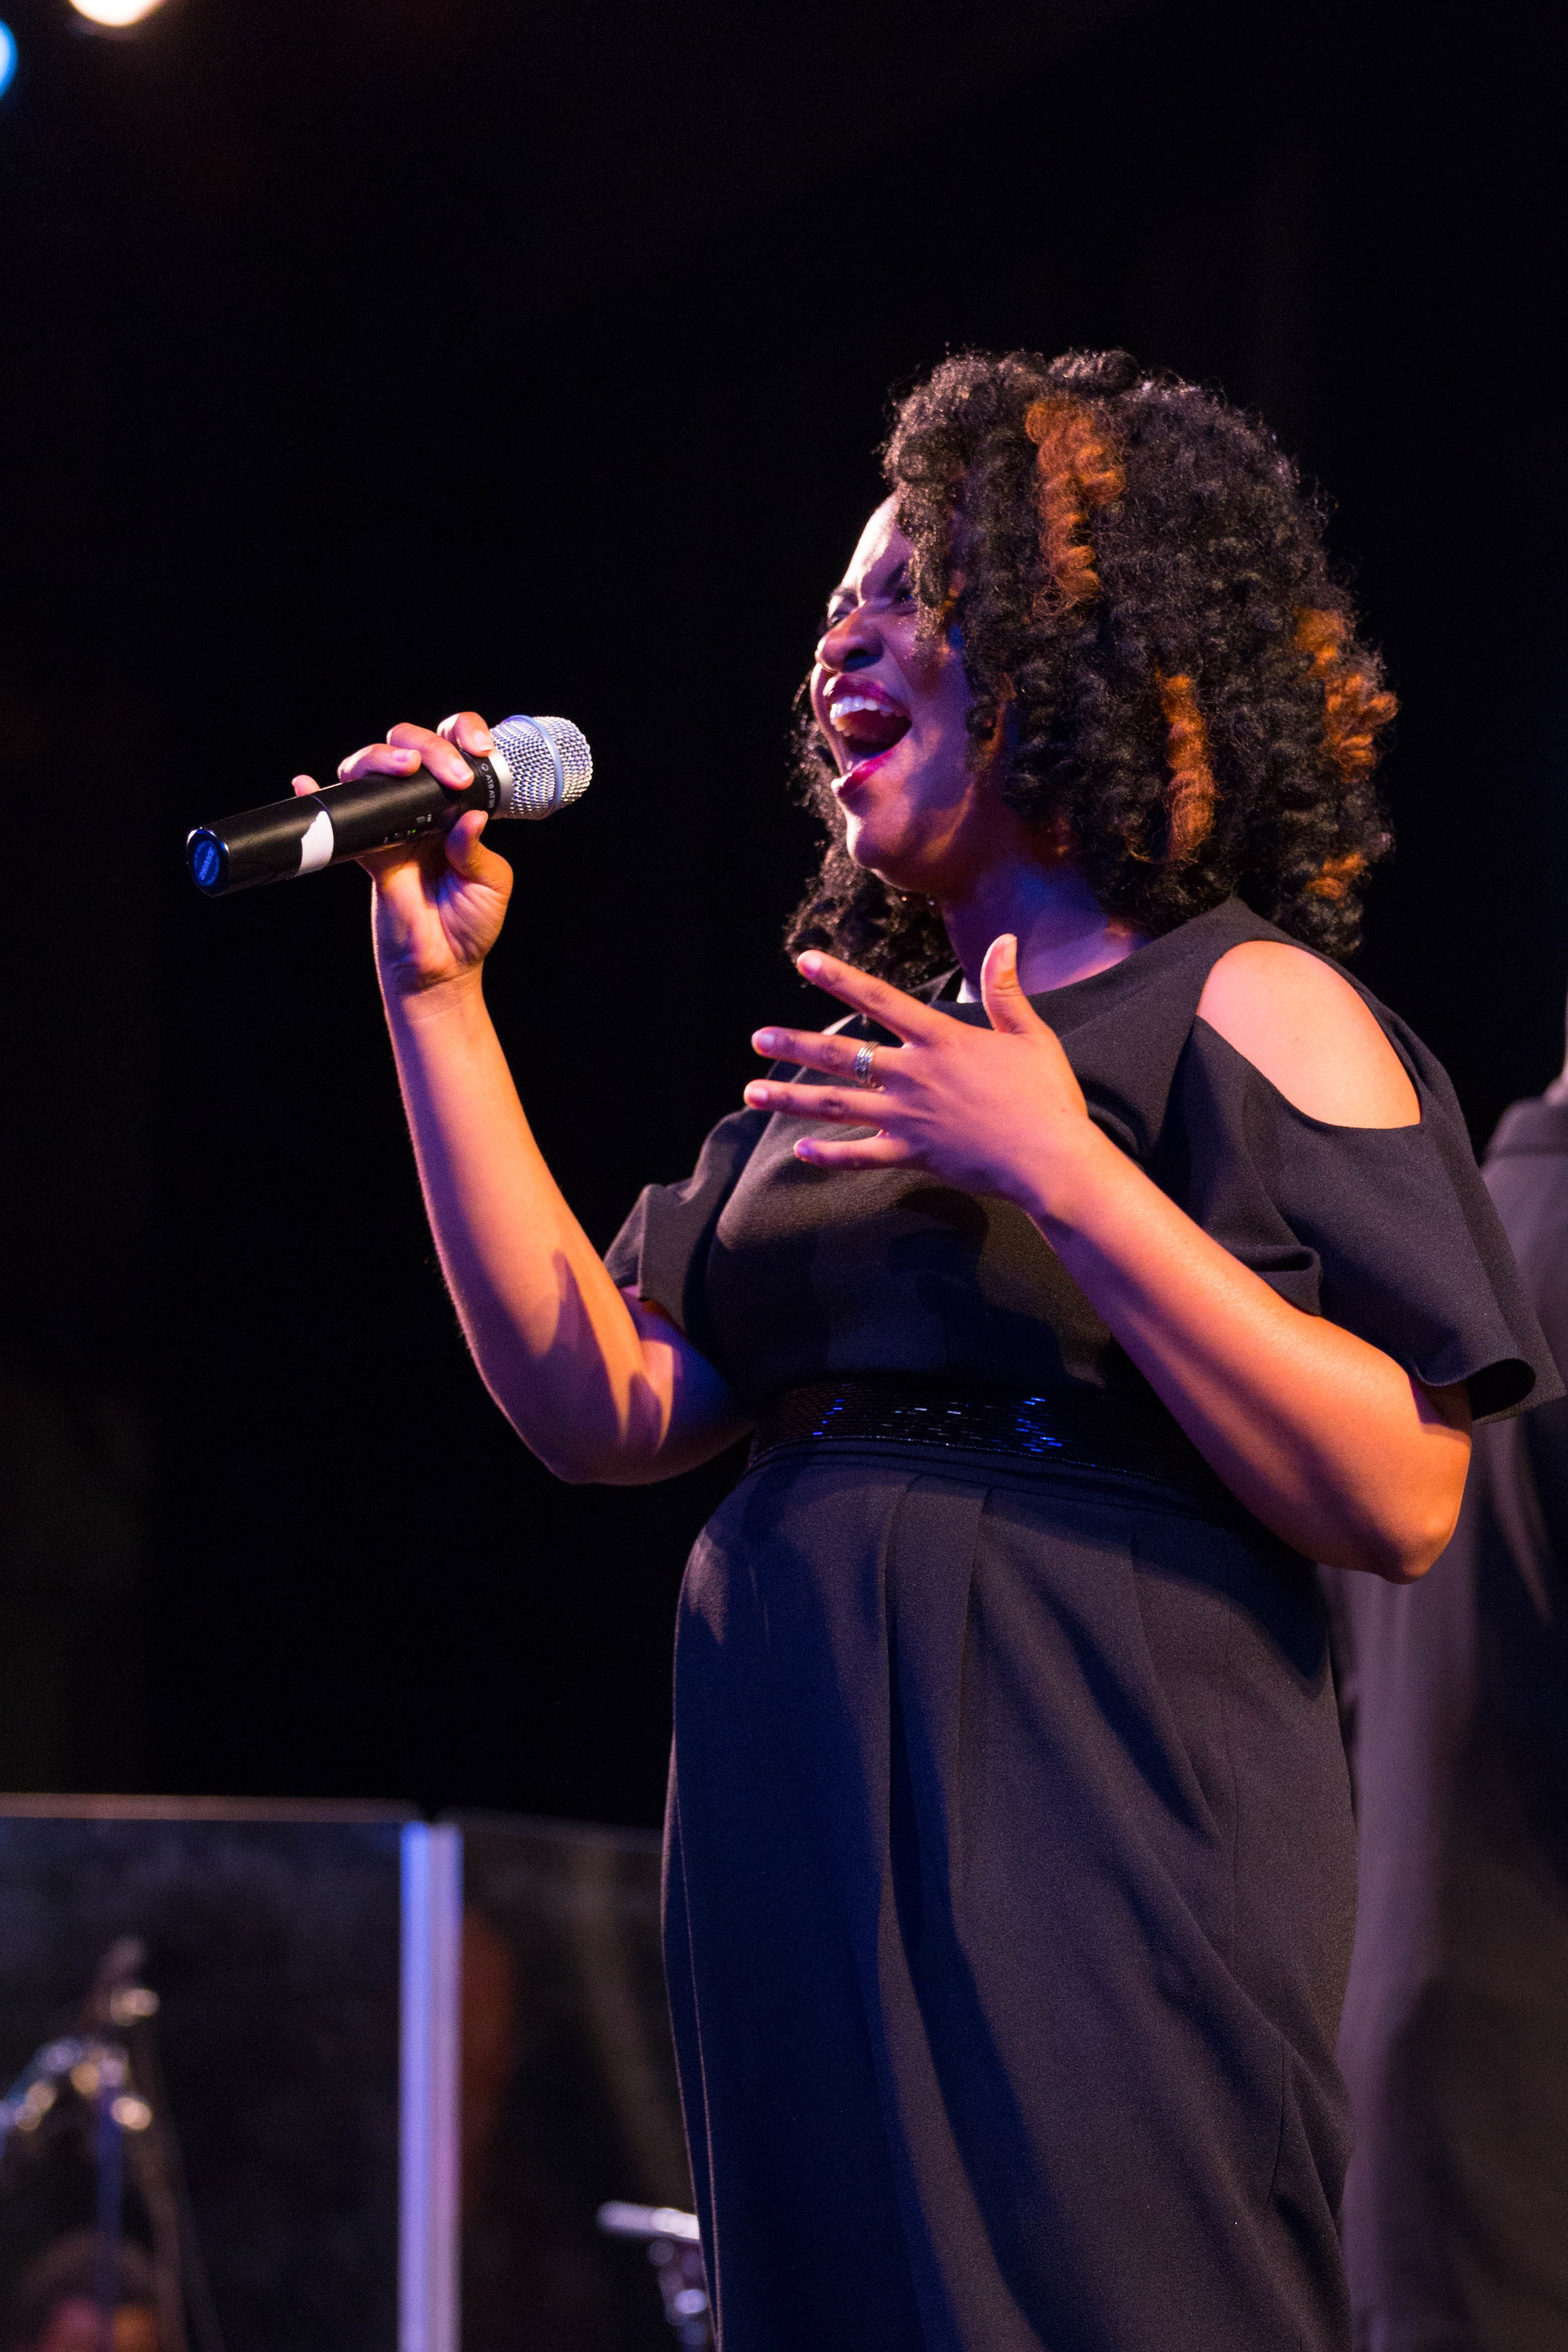 Wiljeana Jackson-Glover performing at the We Lift Our Voice! 2017 Benefit Concert.  Photo credit: Peter Ricci